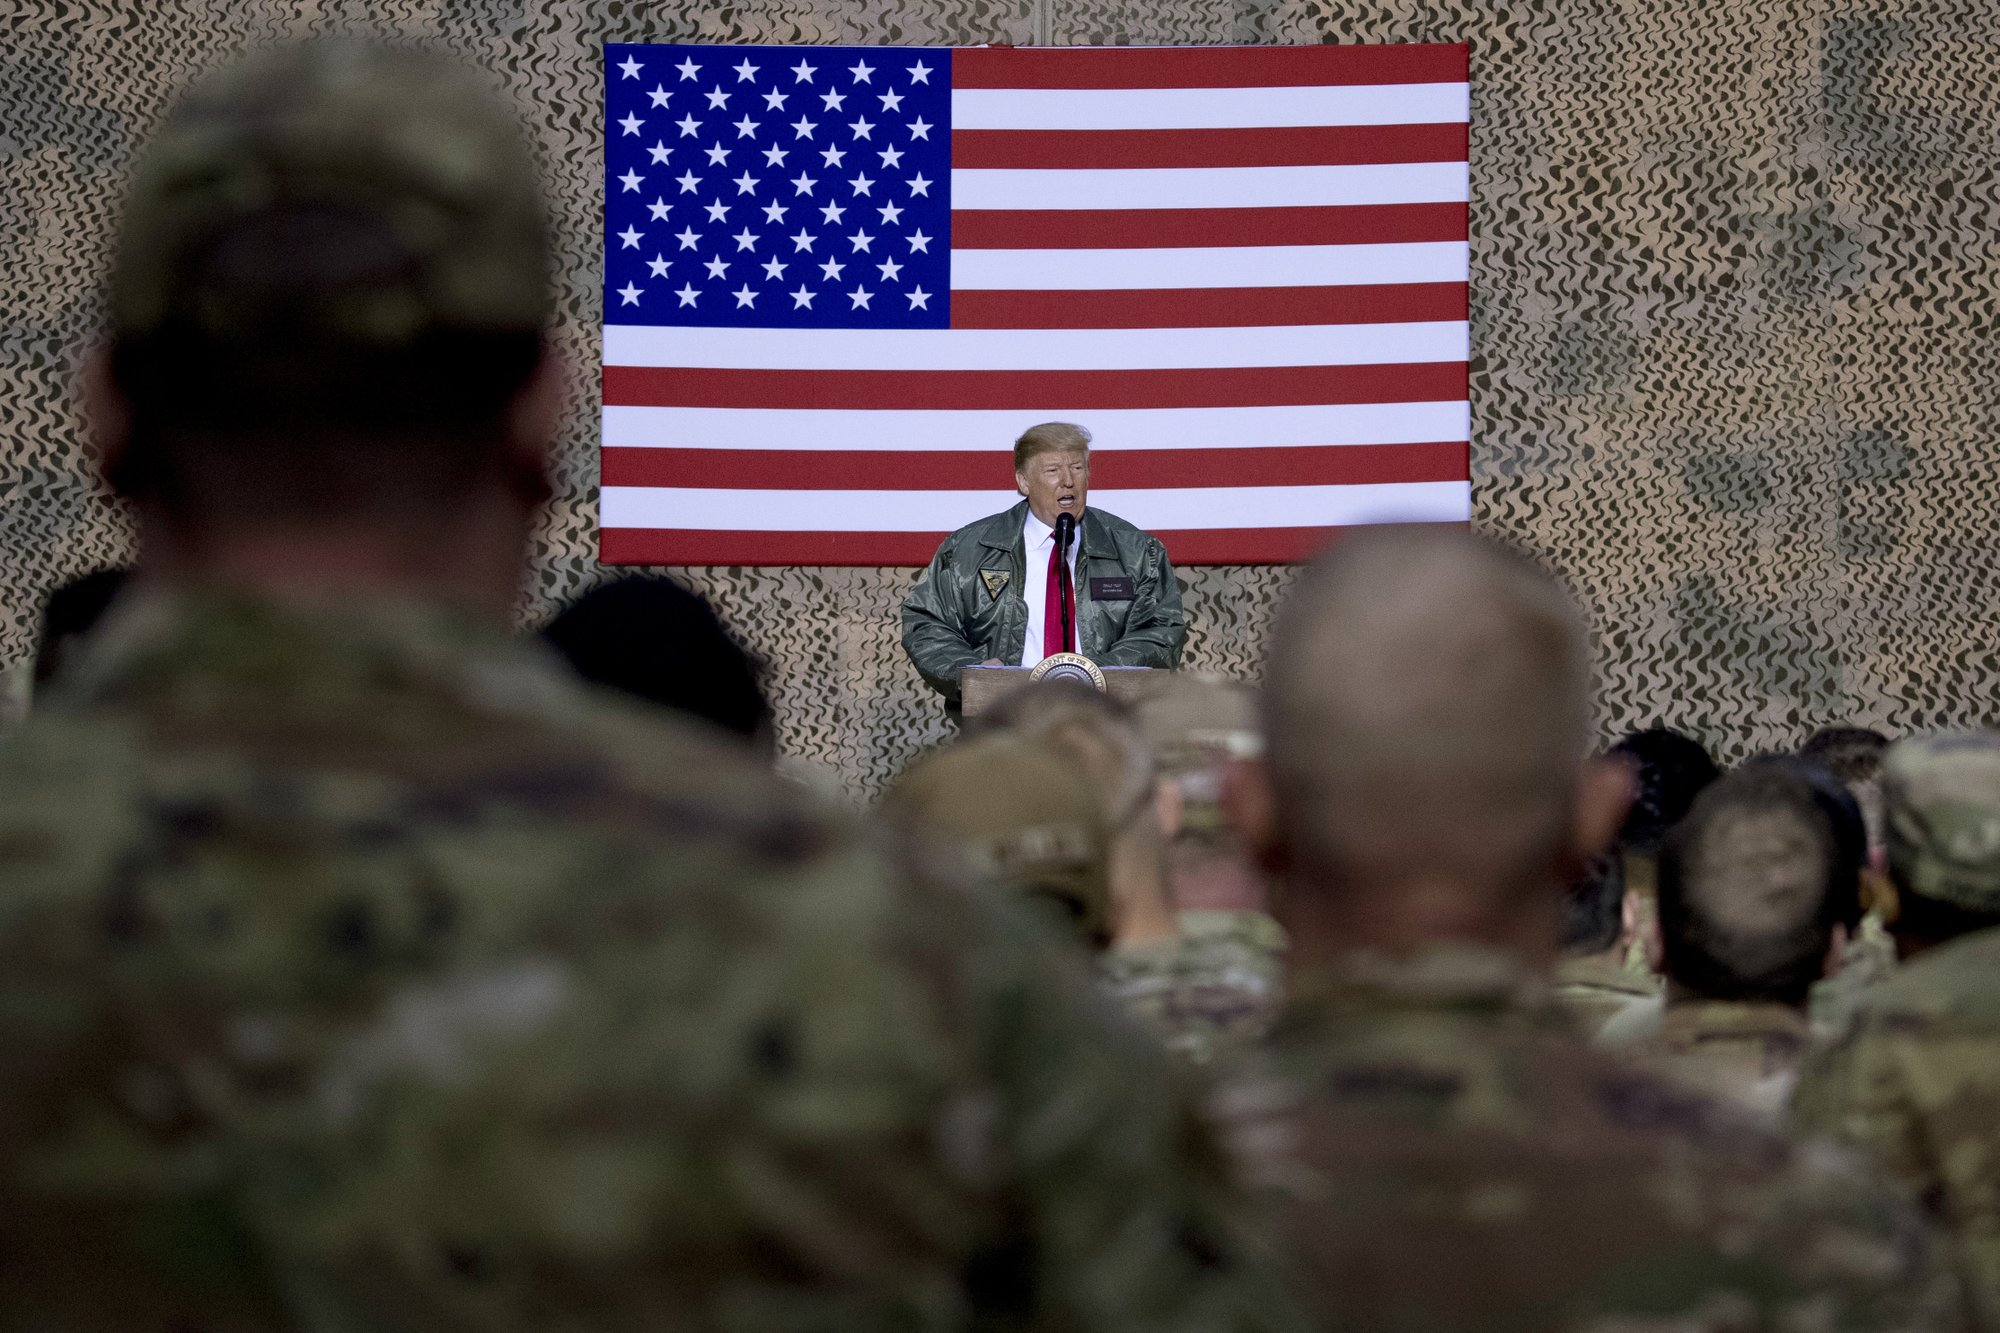 President Donald Trump speaks at a hanger rally at Al Asad Air Base, Iraq, Wednesday, Dec. 26, 2018. In a surprise trip to Iraq, President Donald Trump on Wednesday defended his decision to withdraw U.S. forces from Syria where they have been helping battle Islamic State militants. (AP Photo/Andrew Harnik)